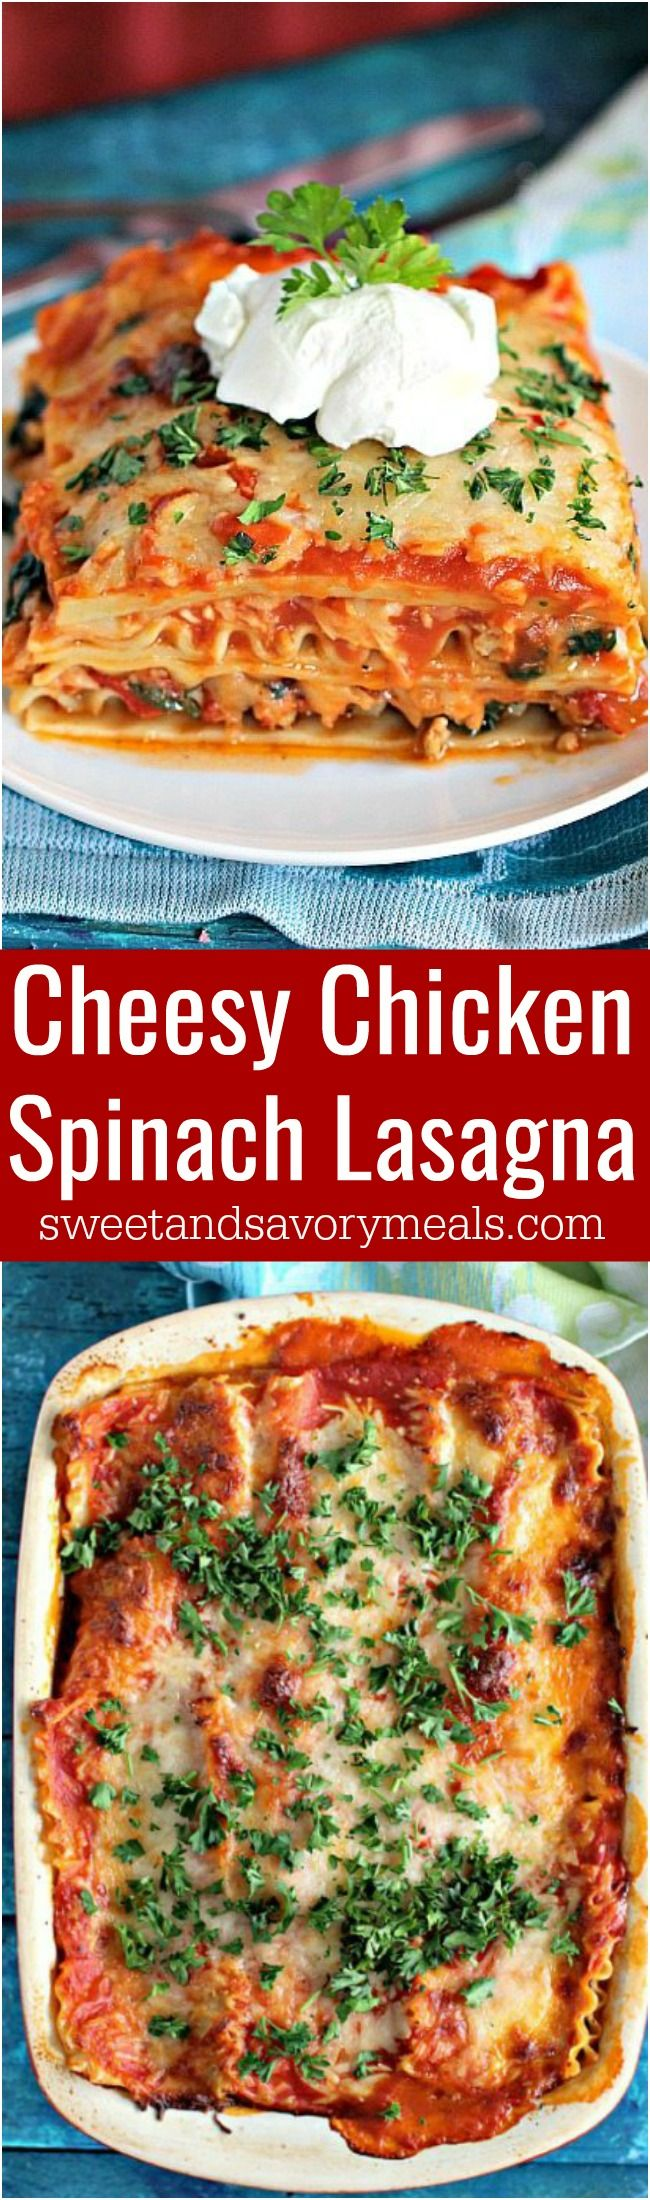 Best Chicken Spinach Lasagna is easy to make, loaded with lean chicken and spinach for a nutritional boost. Delicious, and leftovers taste amazing! #lasagna #chicken #italian